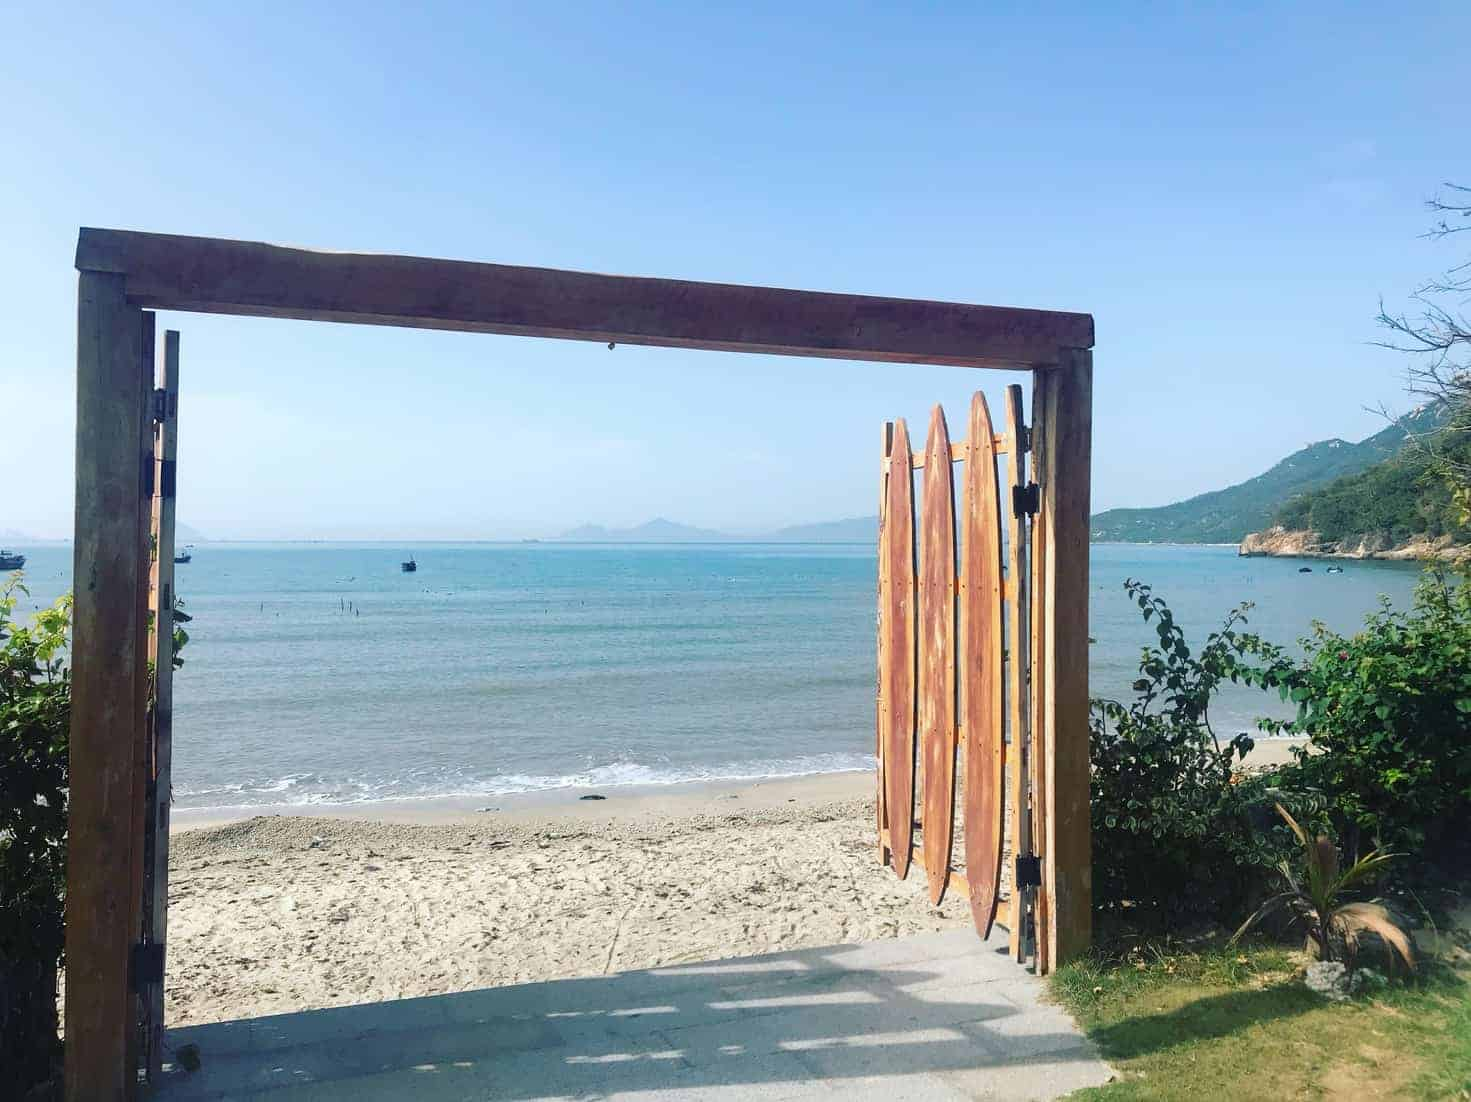 The gate opens to yet another adventure one can experience at Ninhvana VBH, Vietnam